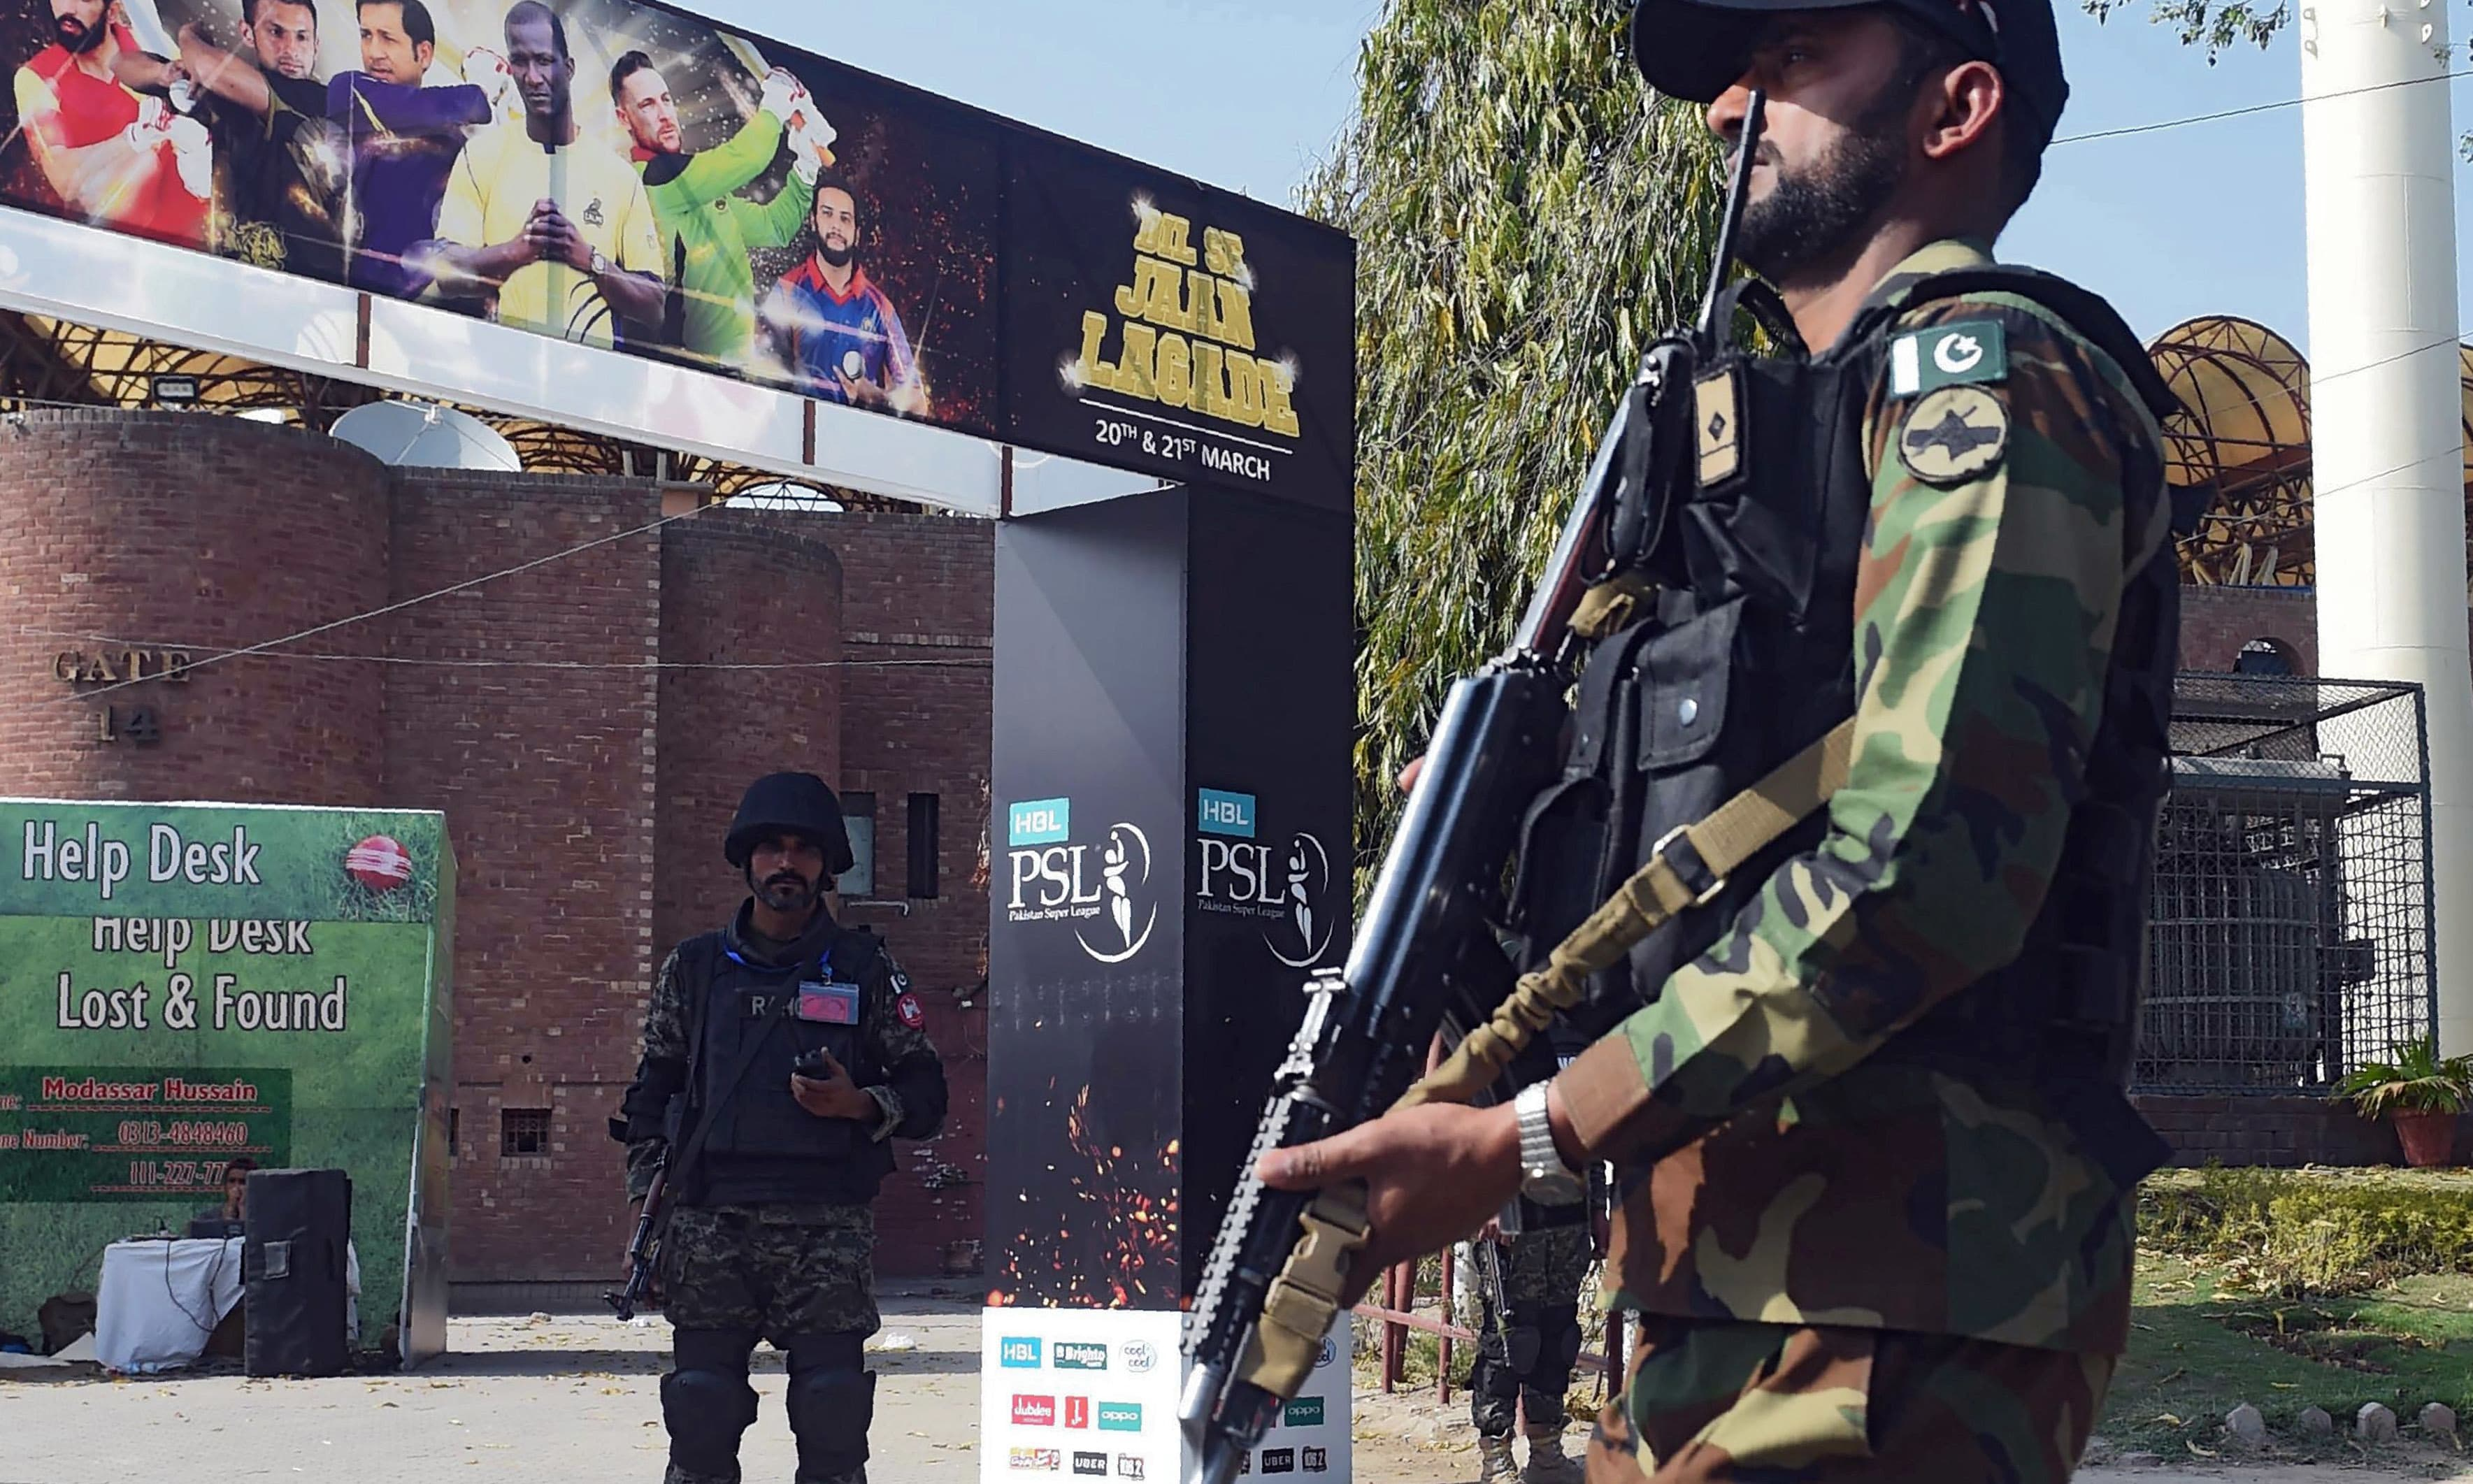 SSG personnel guard outside Gaddafi Cricket Stadium ahead of PSL match. —AFP